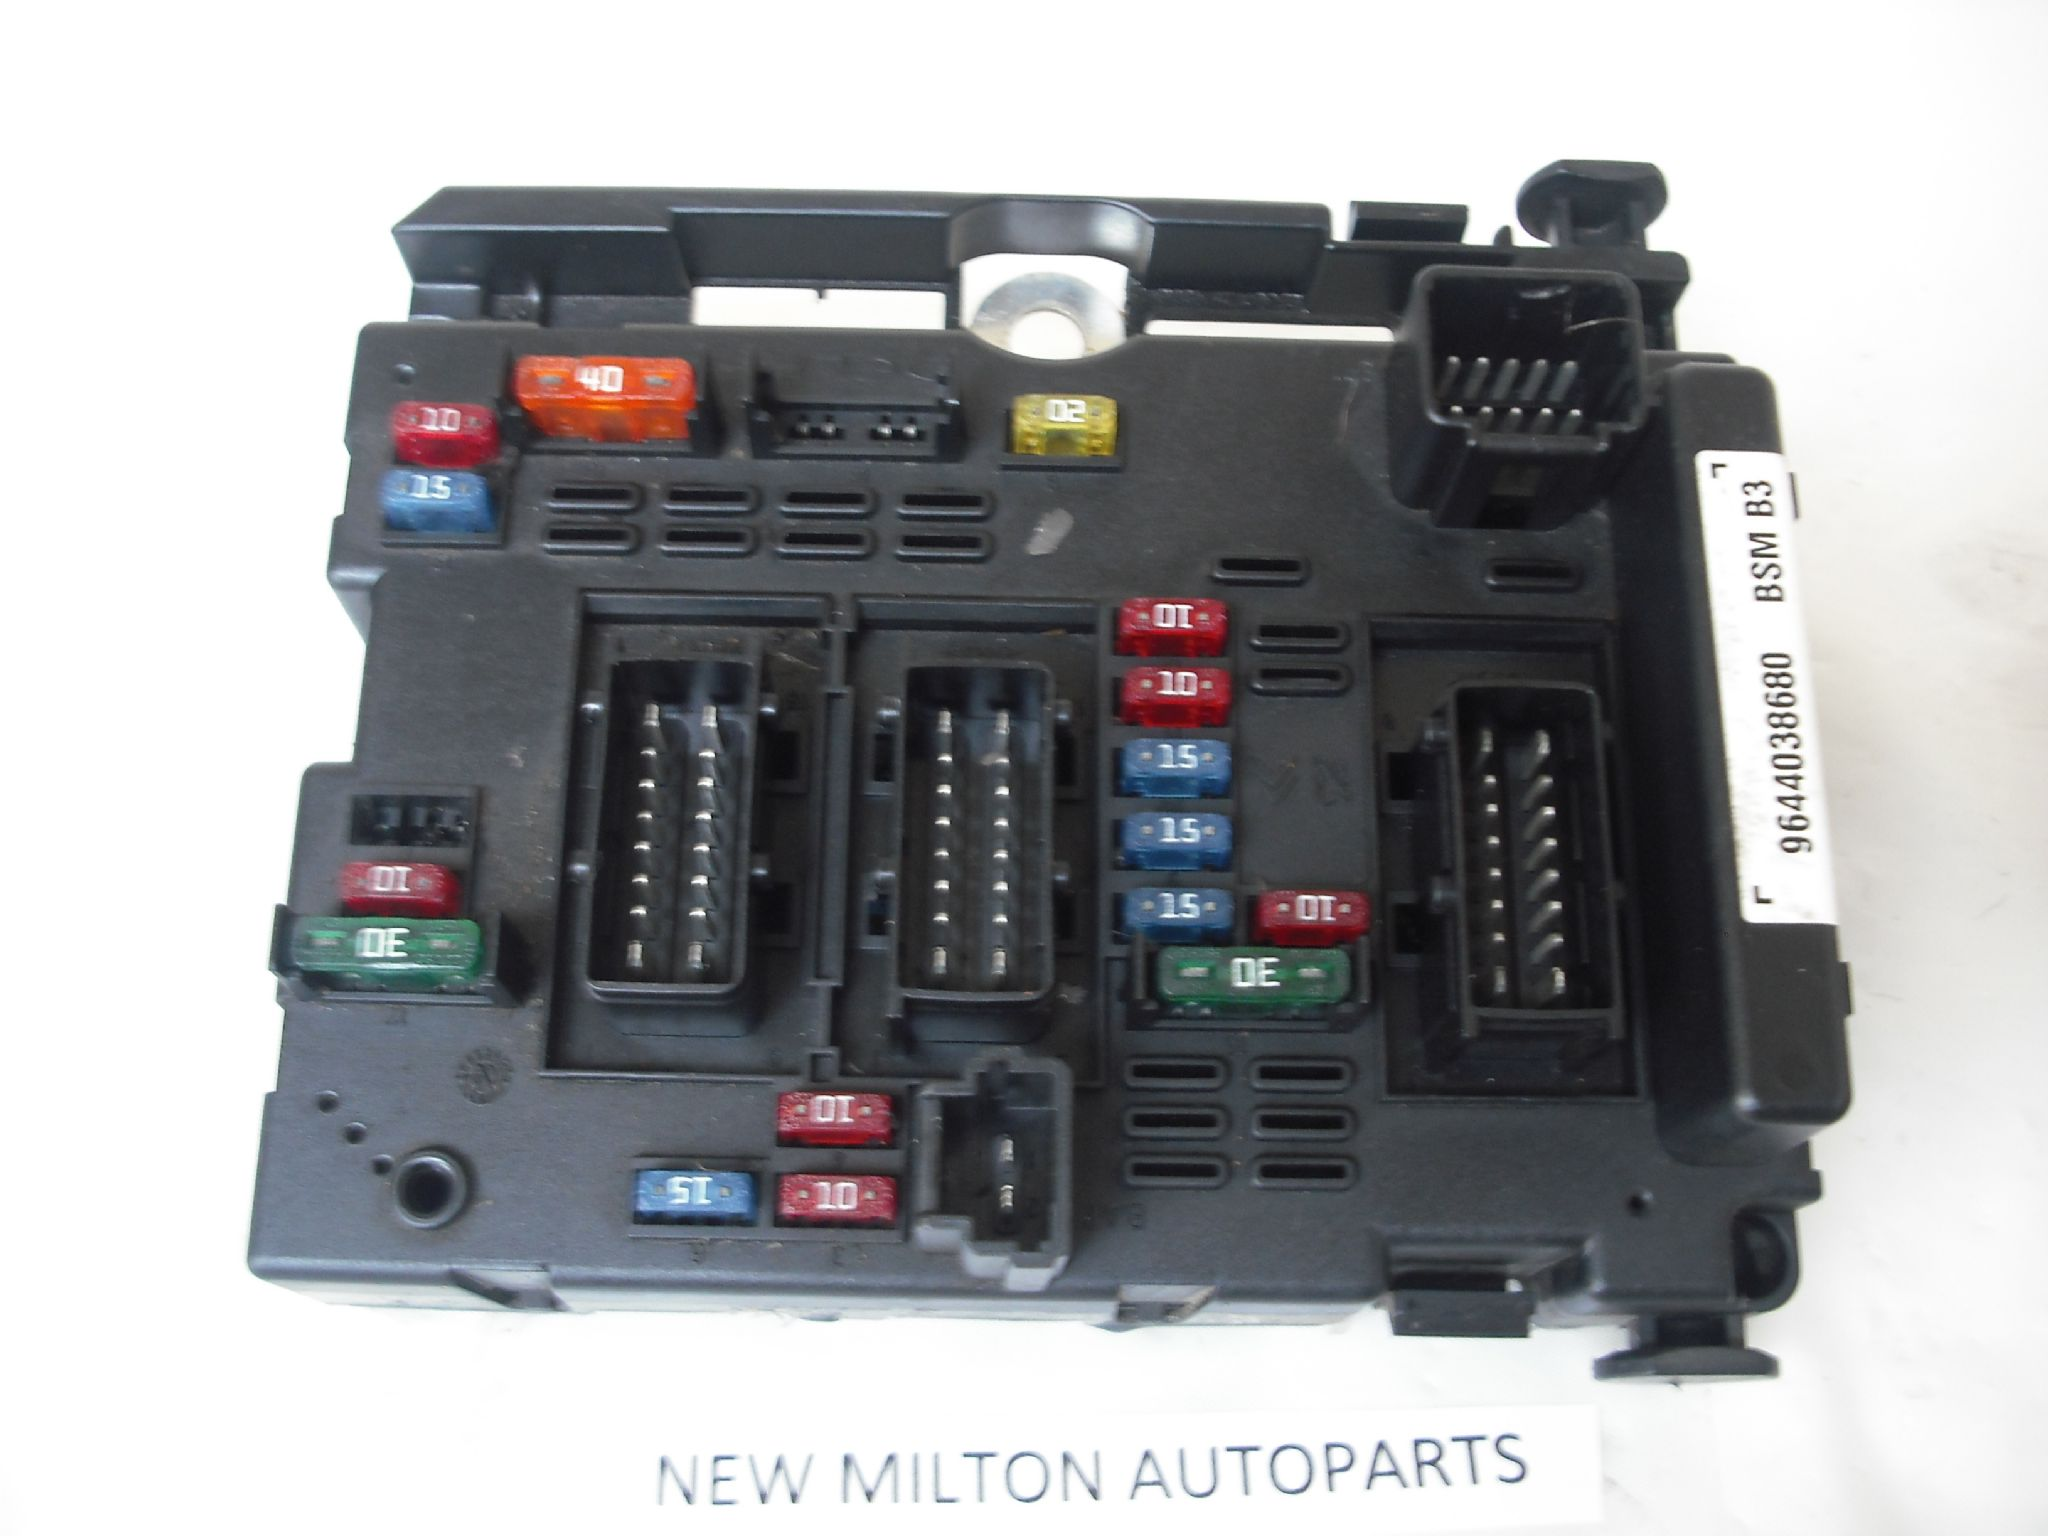 peugeot 307 partner citroen berlingo fuse box controller 9644038680 bsm b3 ........................sorry out of stock 5843 p peugeot 307 partner citroen berlingo fuse box controller citroen berlingo 2003 fuse box at bayanpartner.co